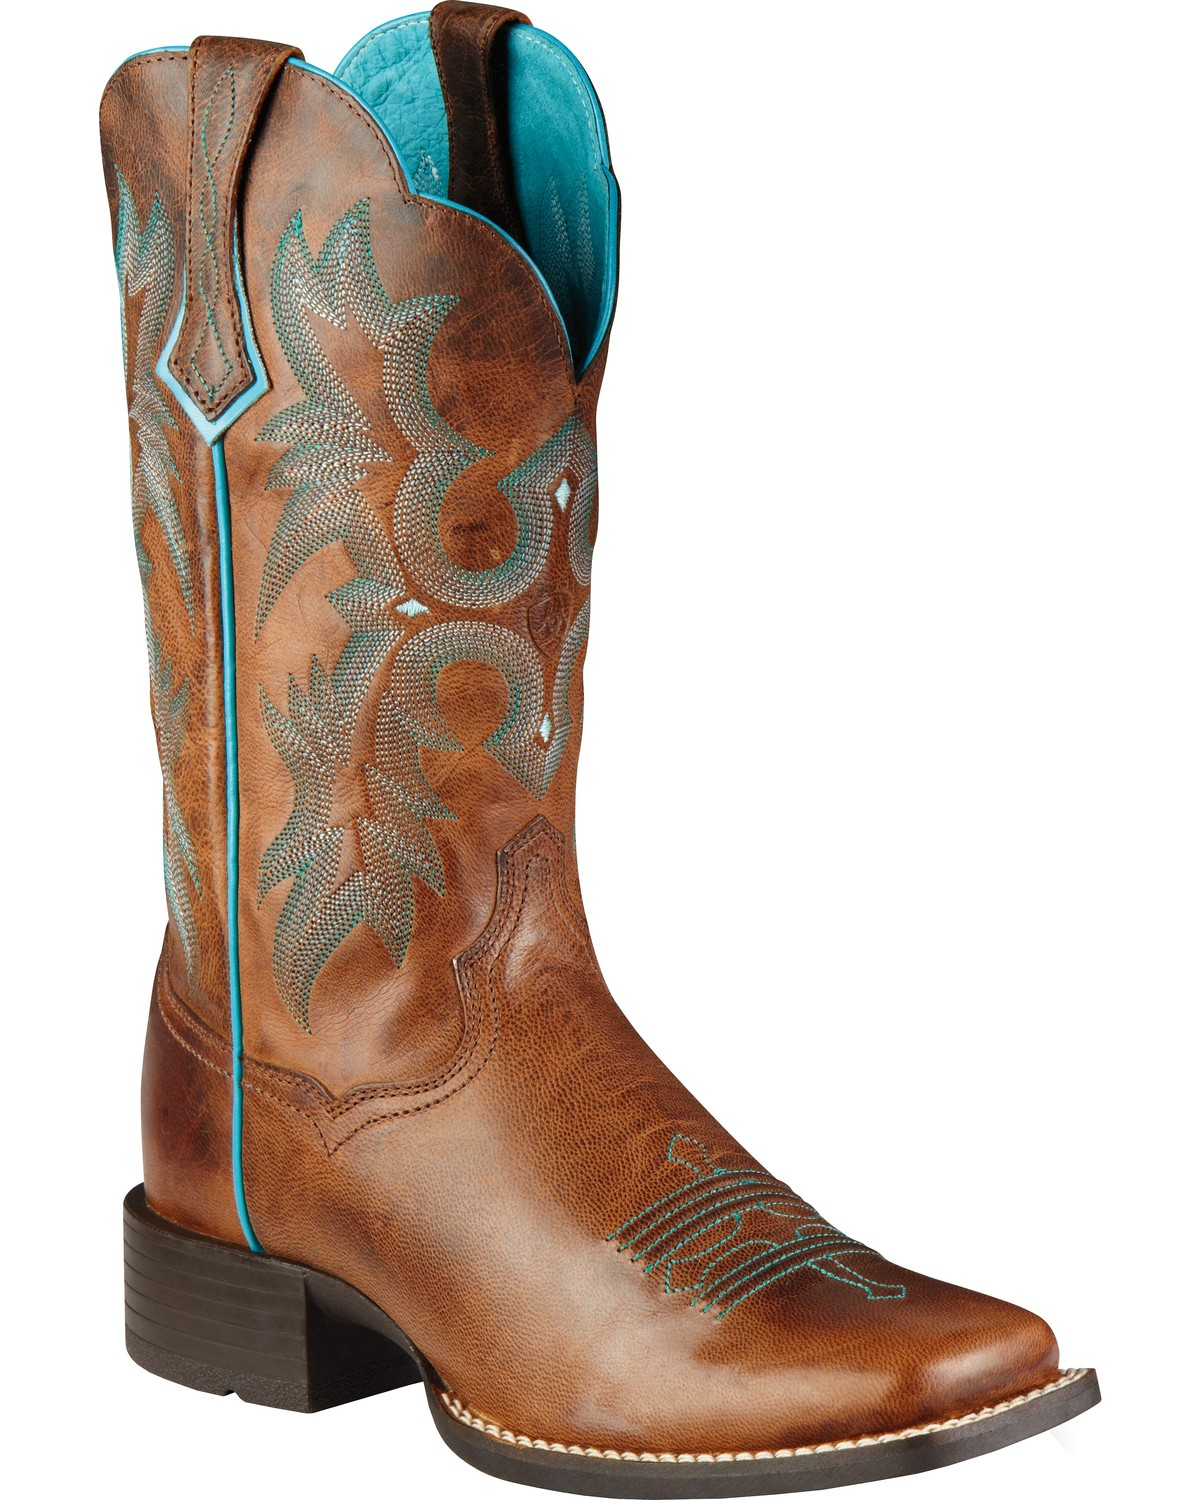 49434bf0966 Ariat Women's Tombstone Western Boots - Wide Square Toe